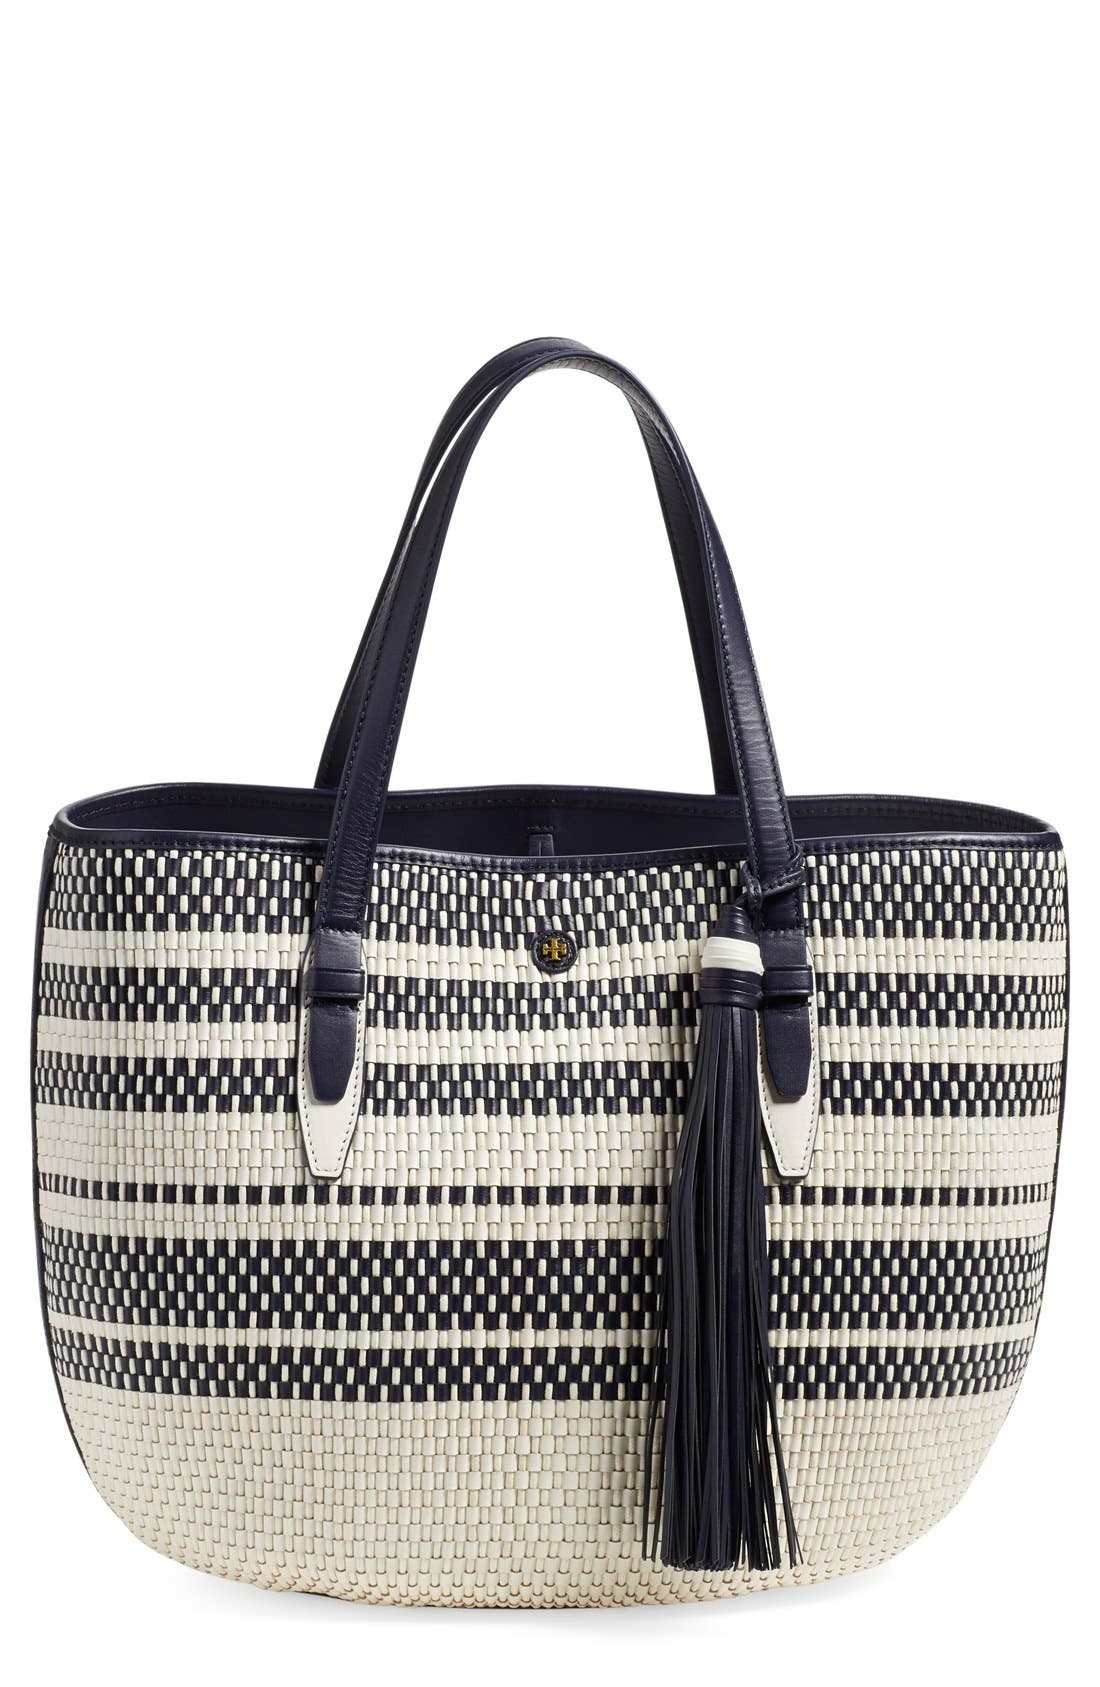 Main Image - Tory Burch Woven Leather Tote